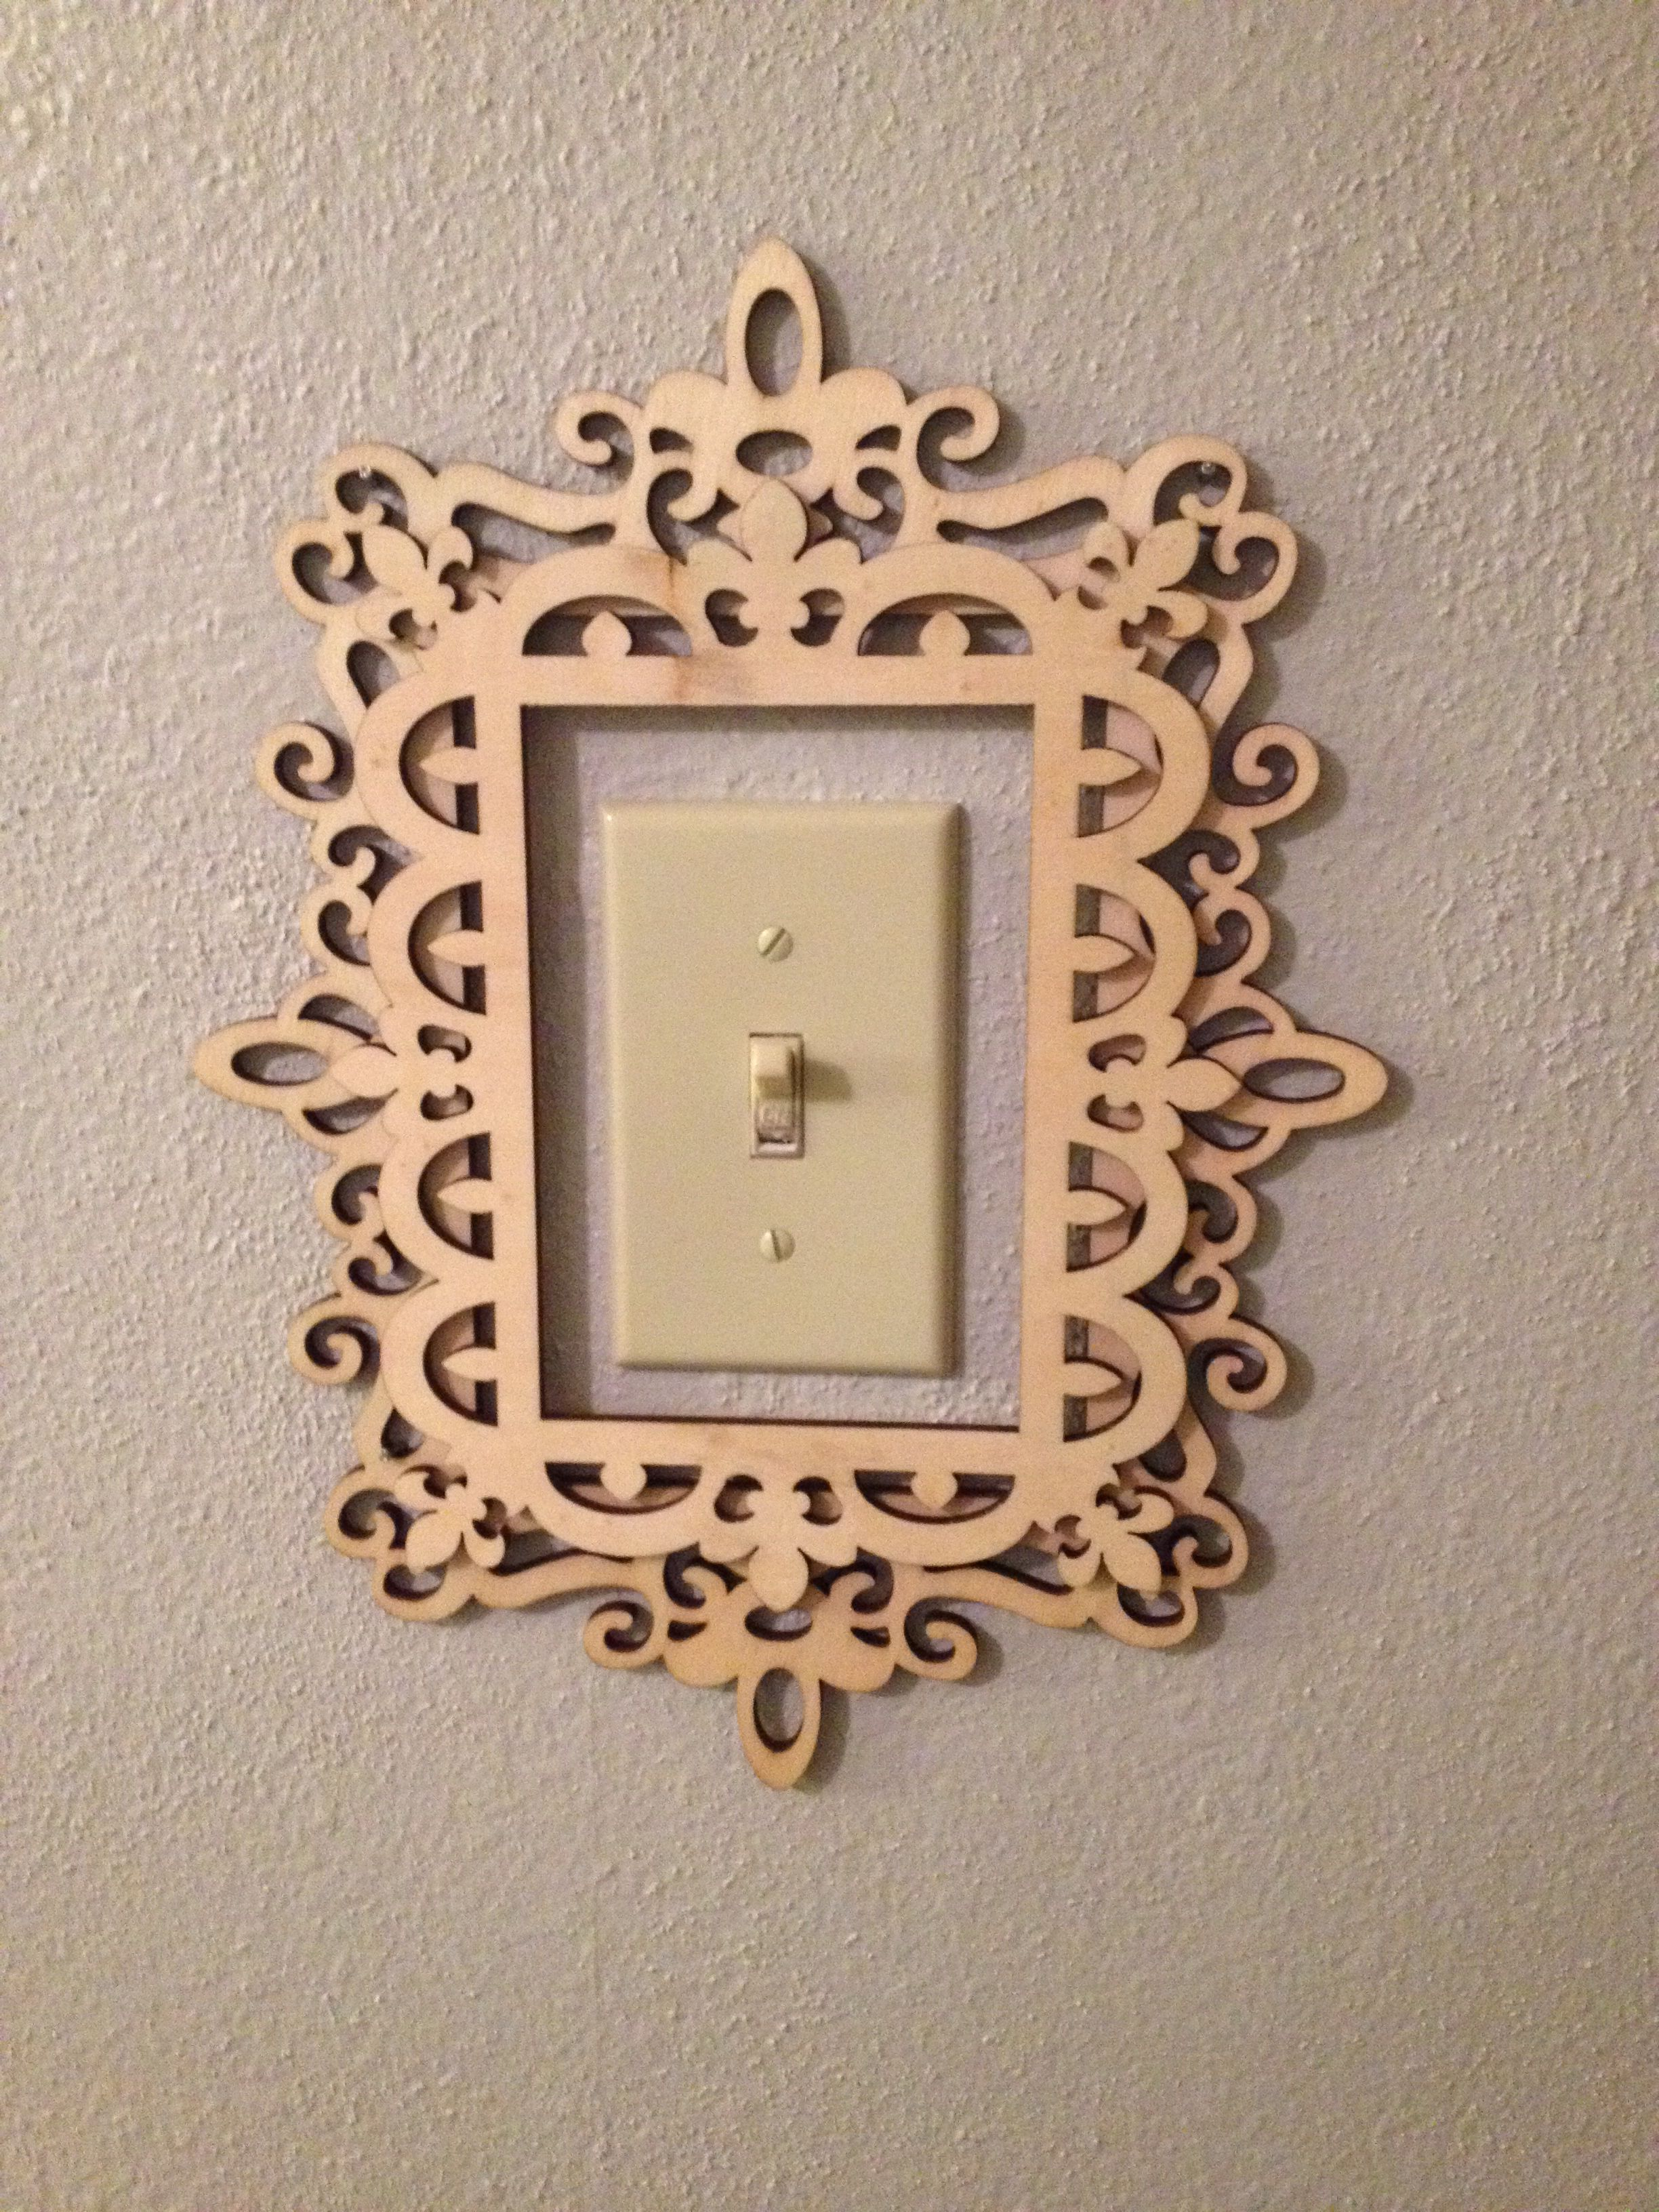 Cute for a light switch or thermostat!! Diy apartments